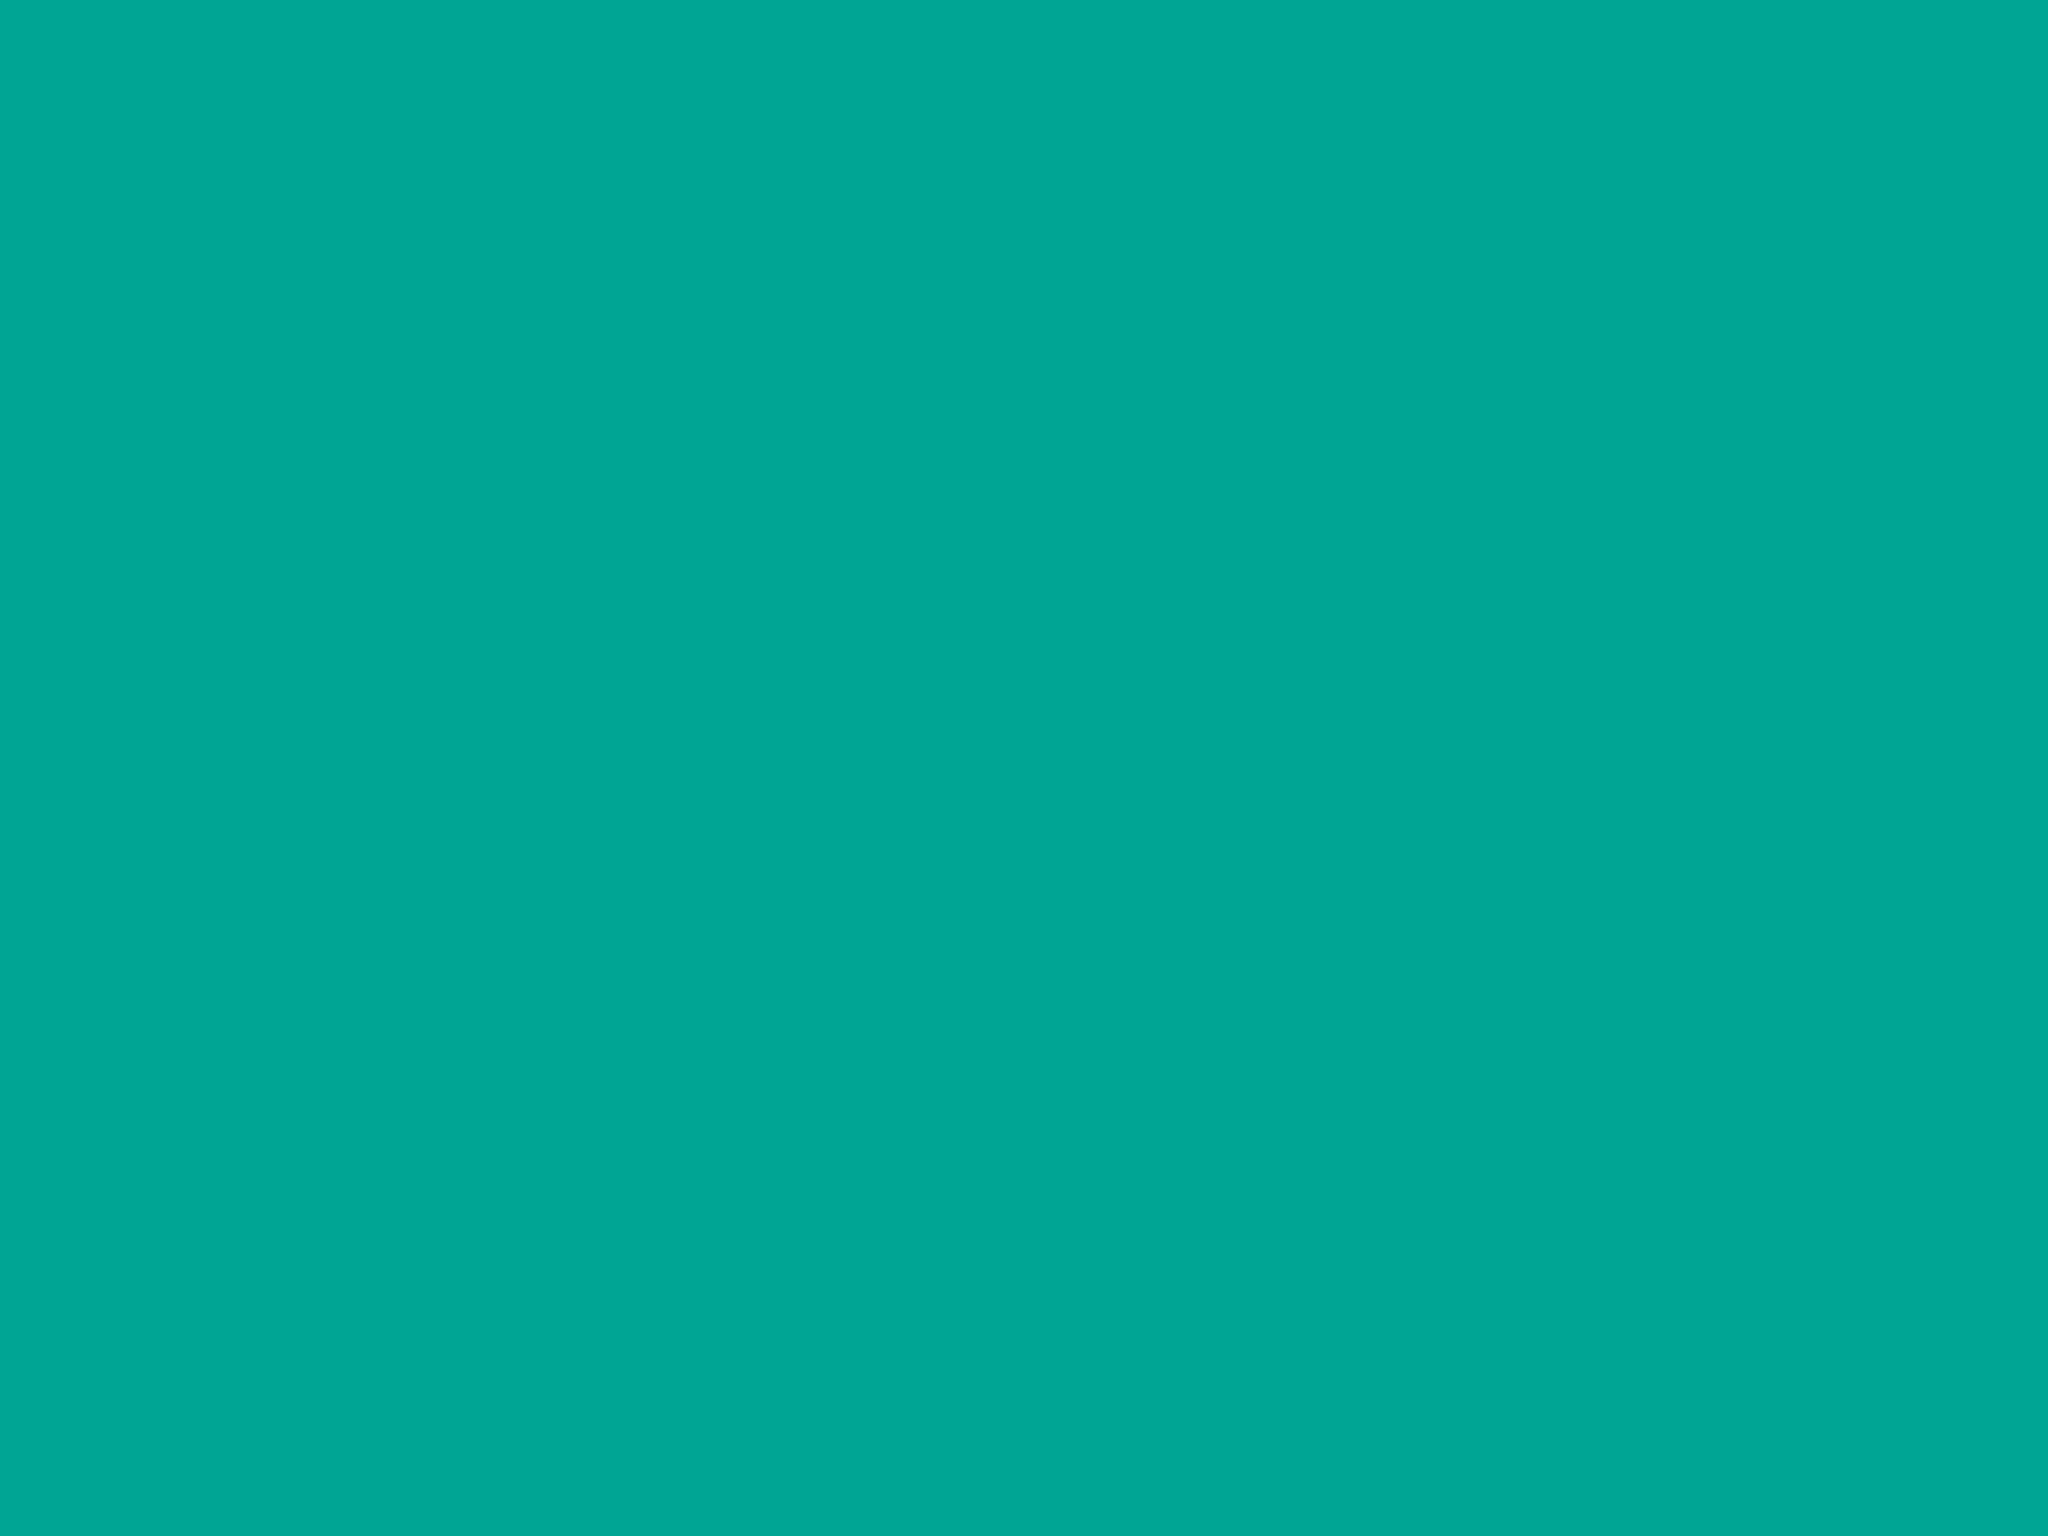 2048x1536 Persian Green Solid Color Background